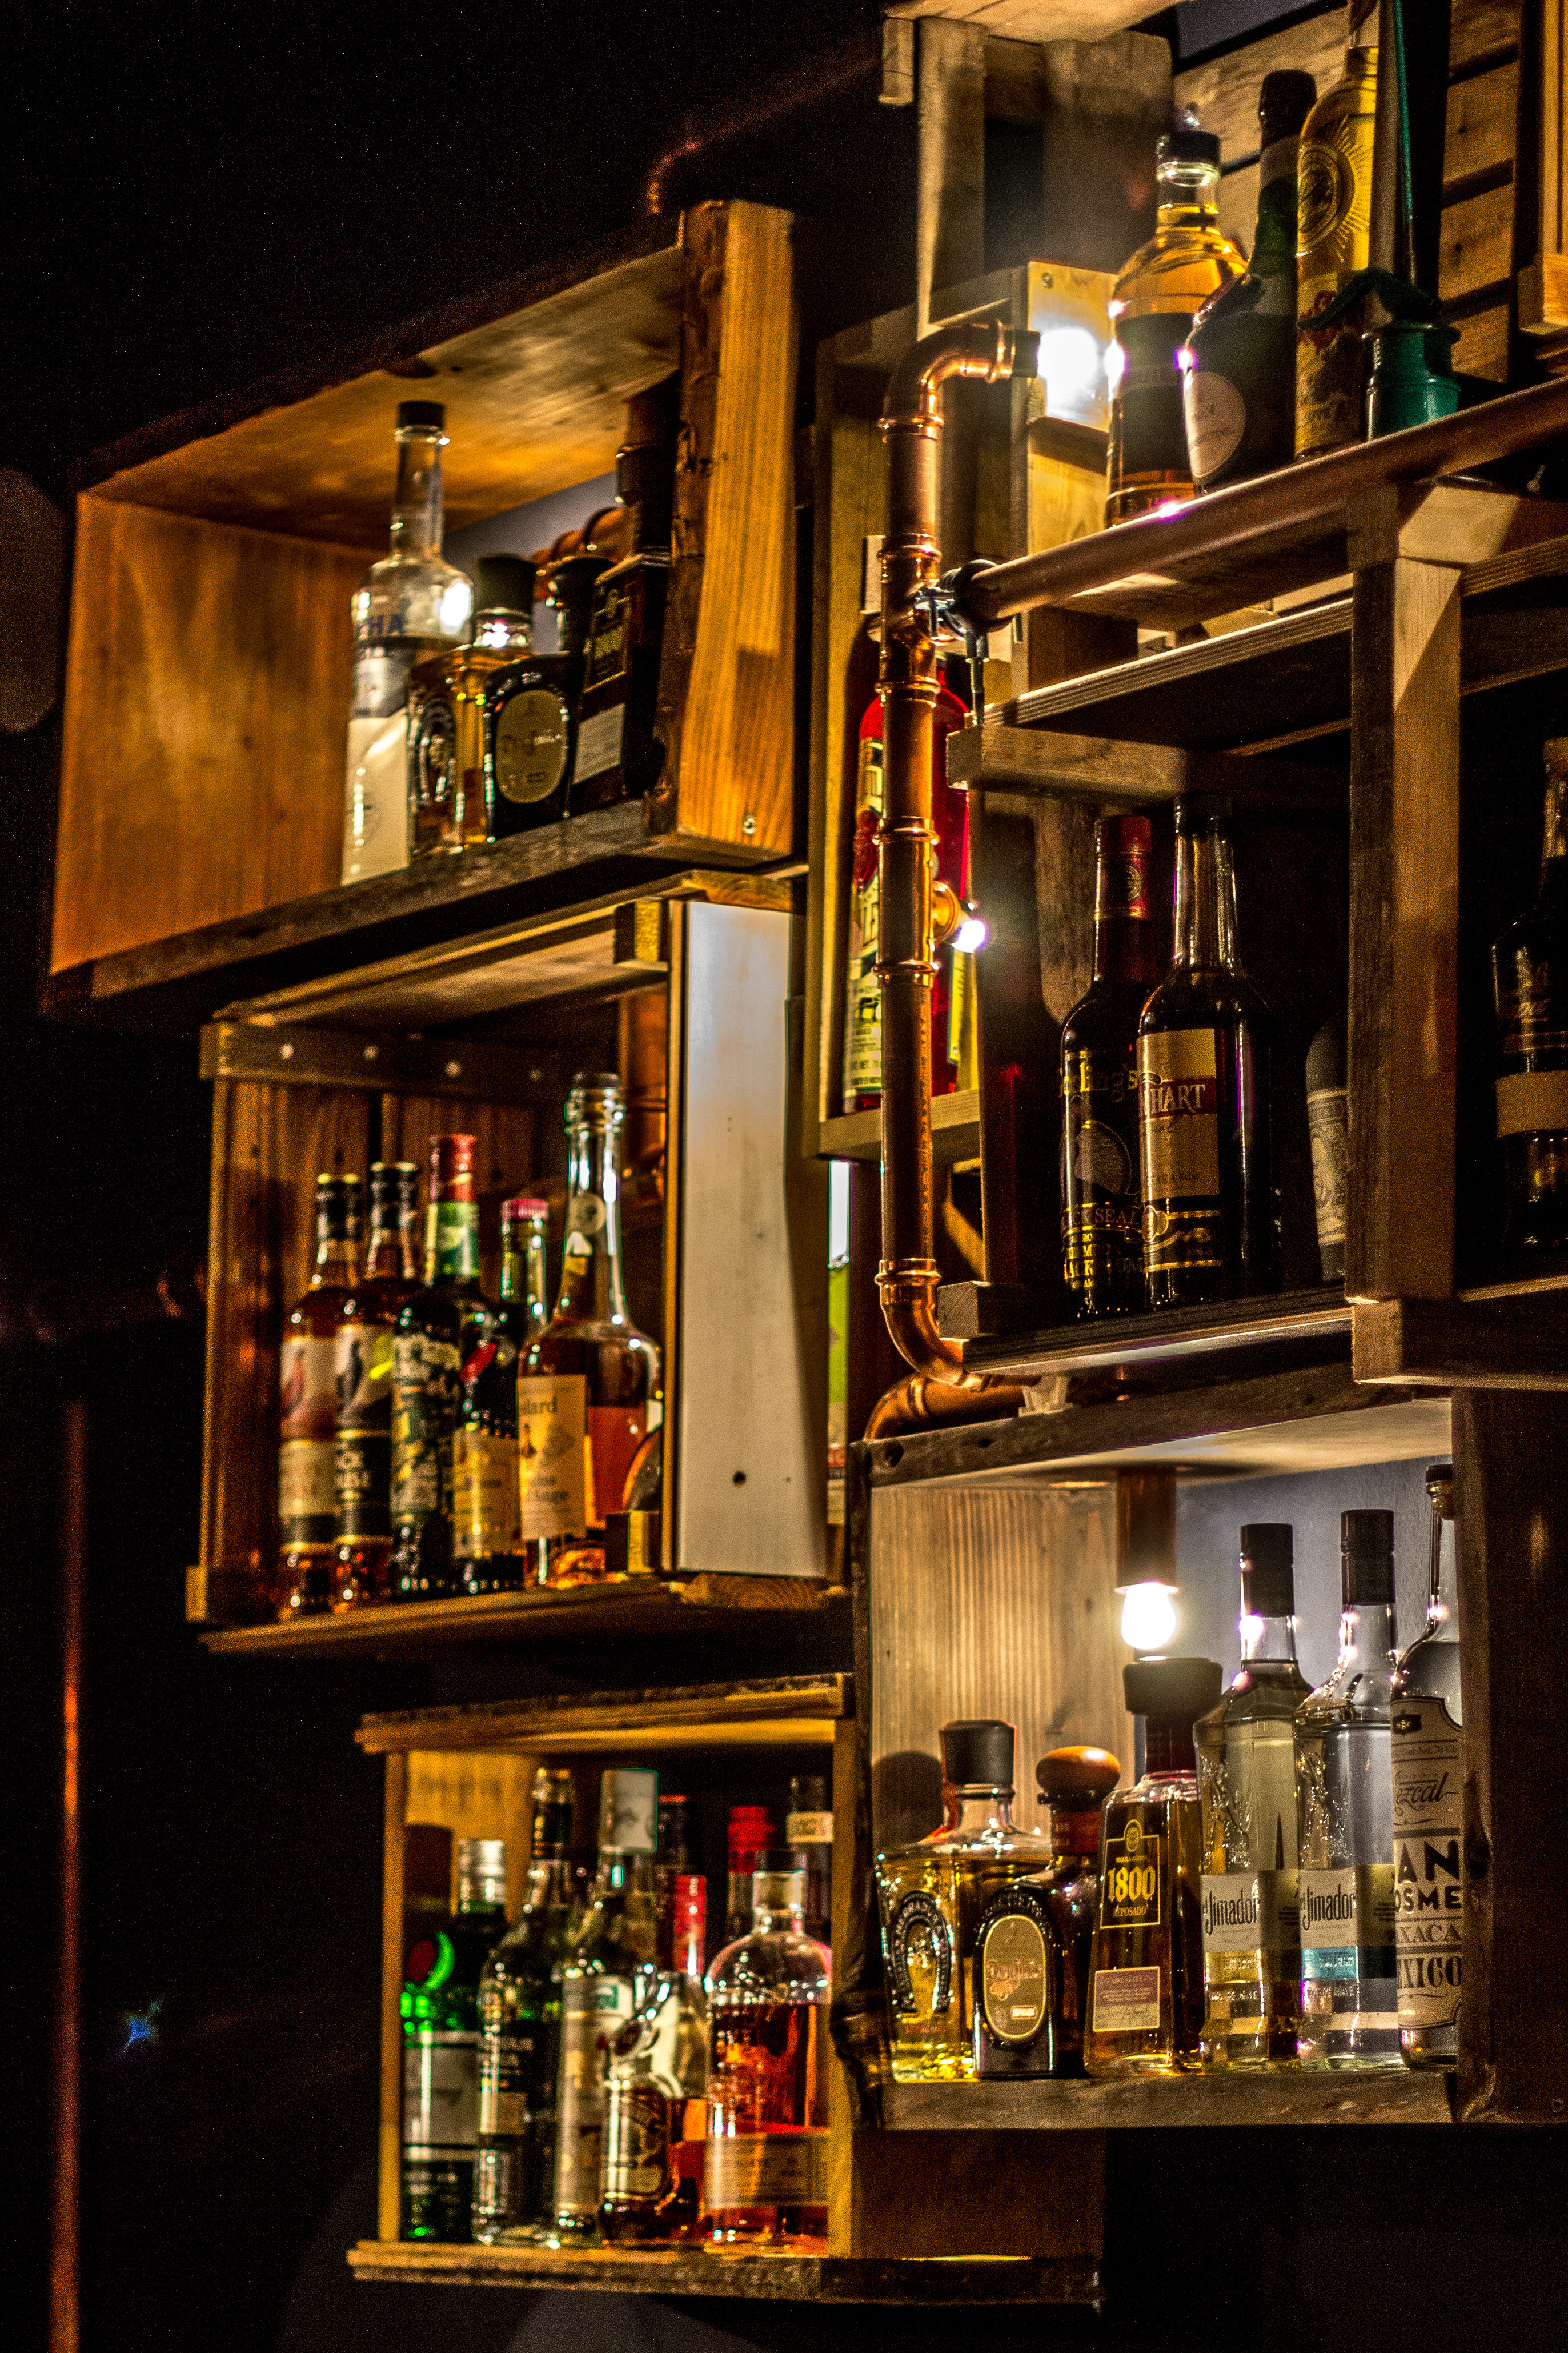 File:Backbar with various bottles of spirits.jpg - Wikimedia Commons